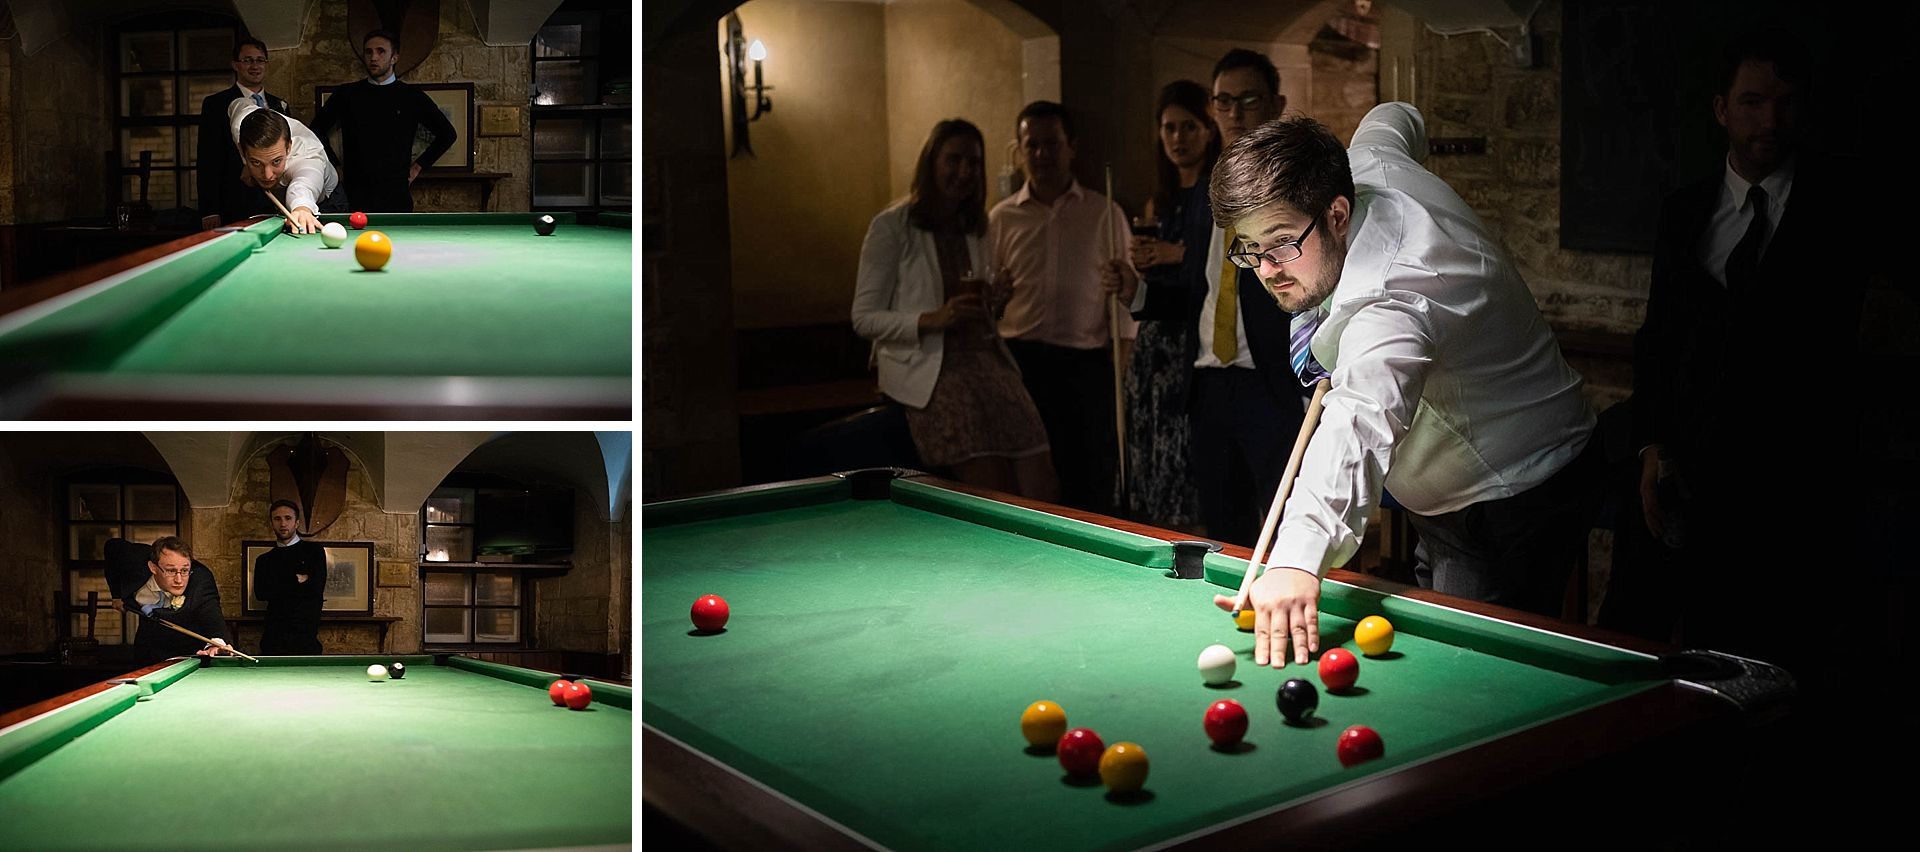 Wedding guests playing snooker